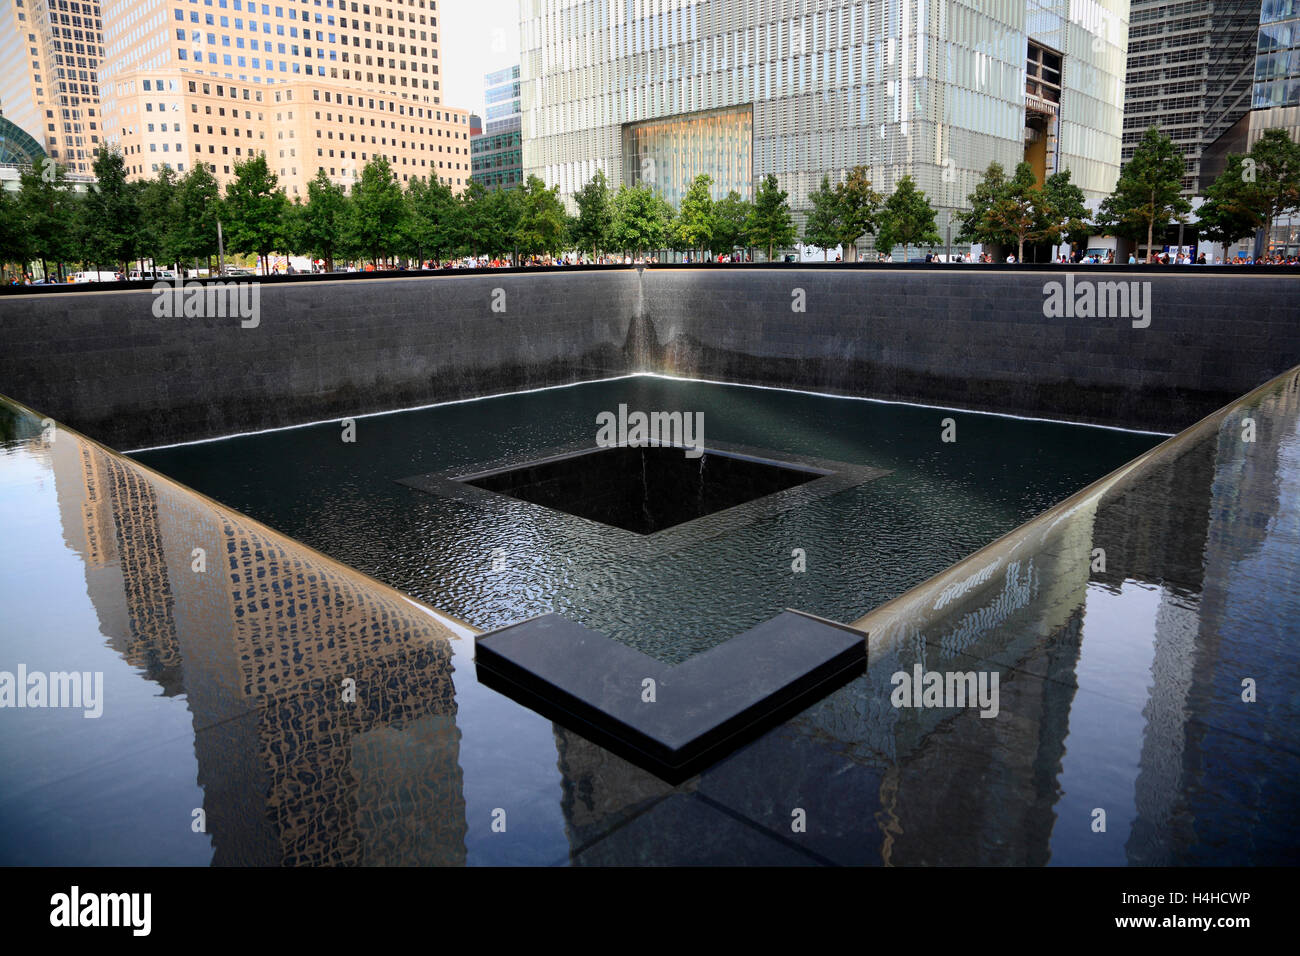 El 9/11 Memorial Pool, Lower Manhattan, Nueva York, EE.UU. Imagen De Stock